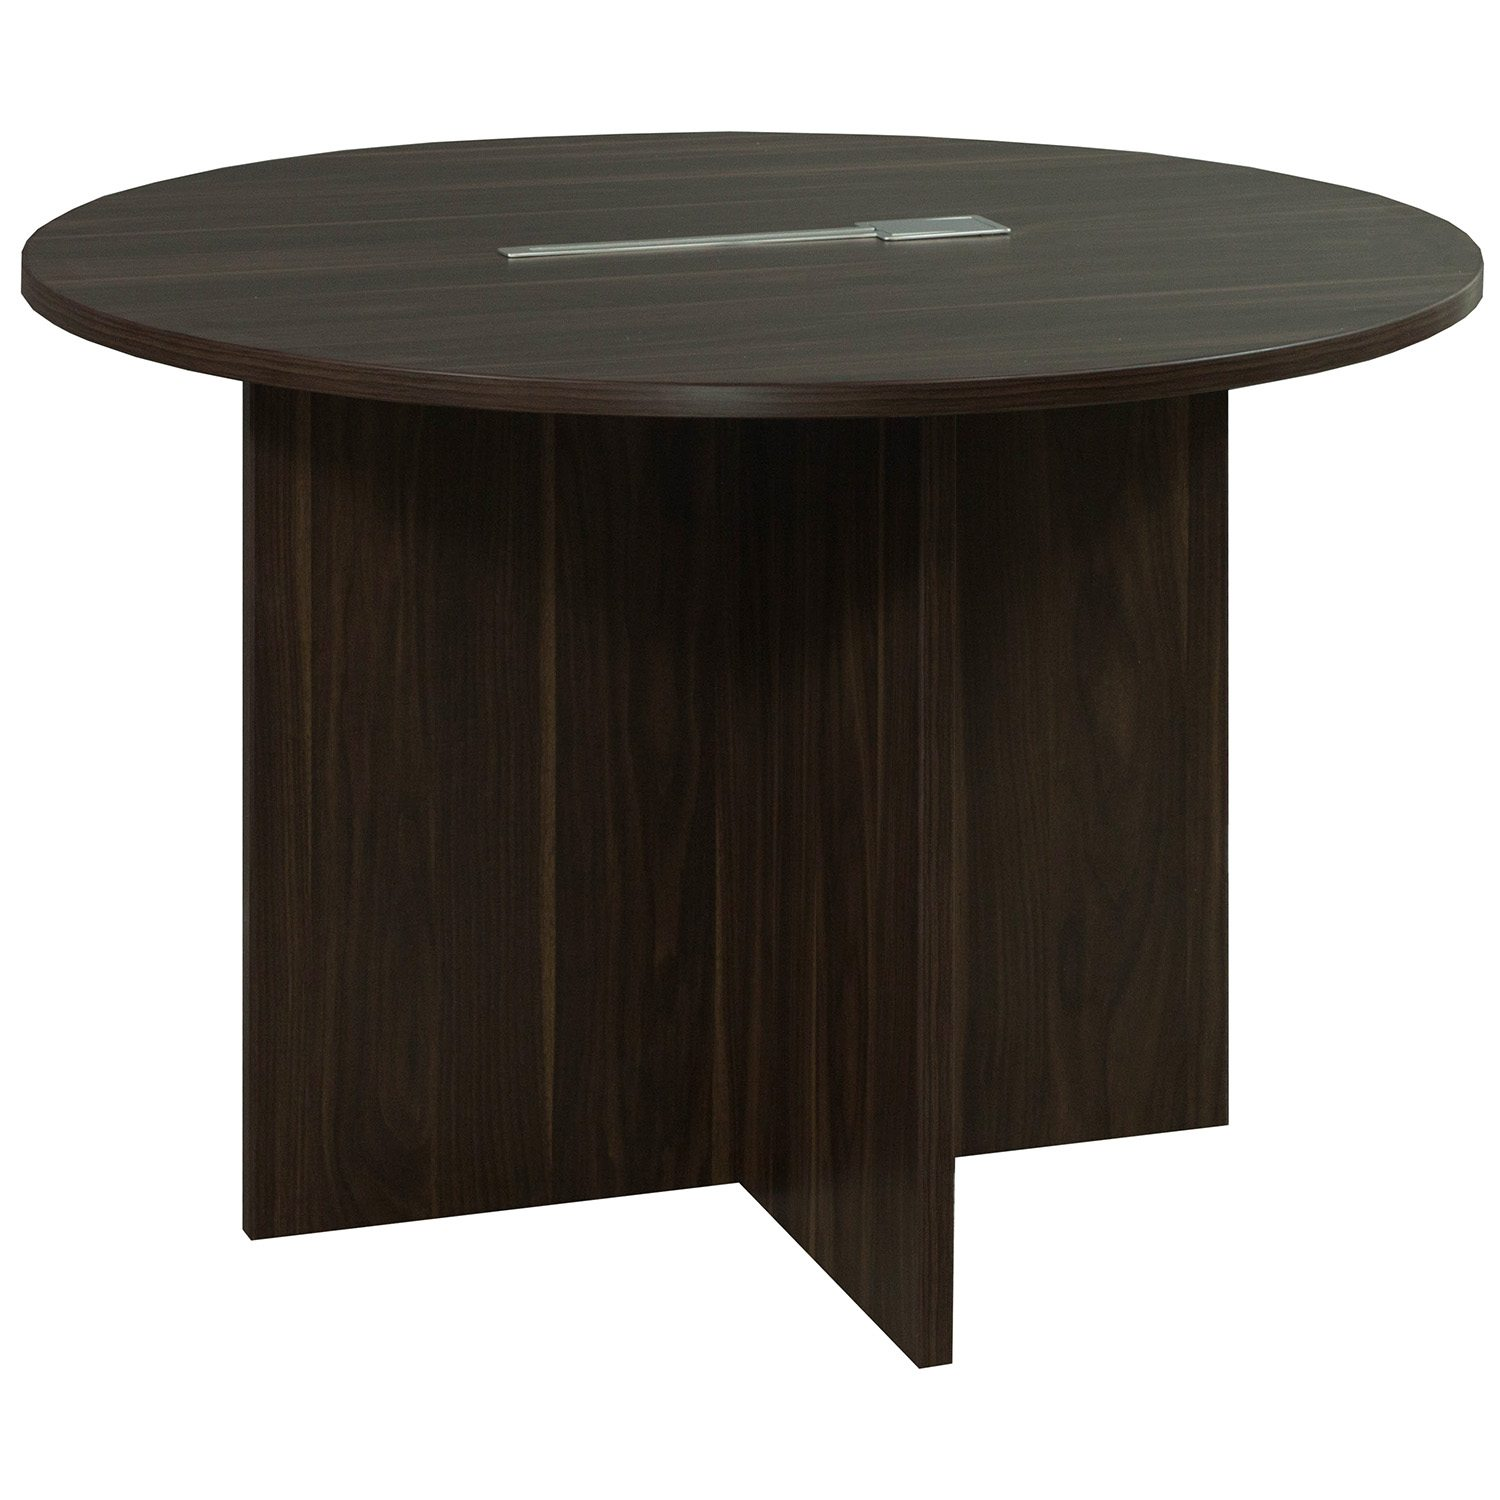 Denmark 42 Inch Round Laminate Meeting Table ...